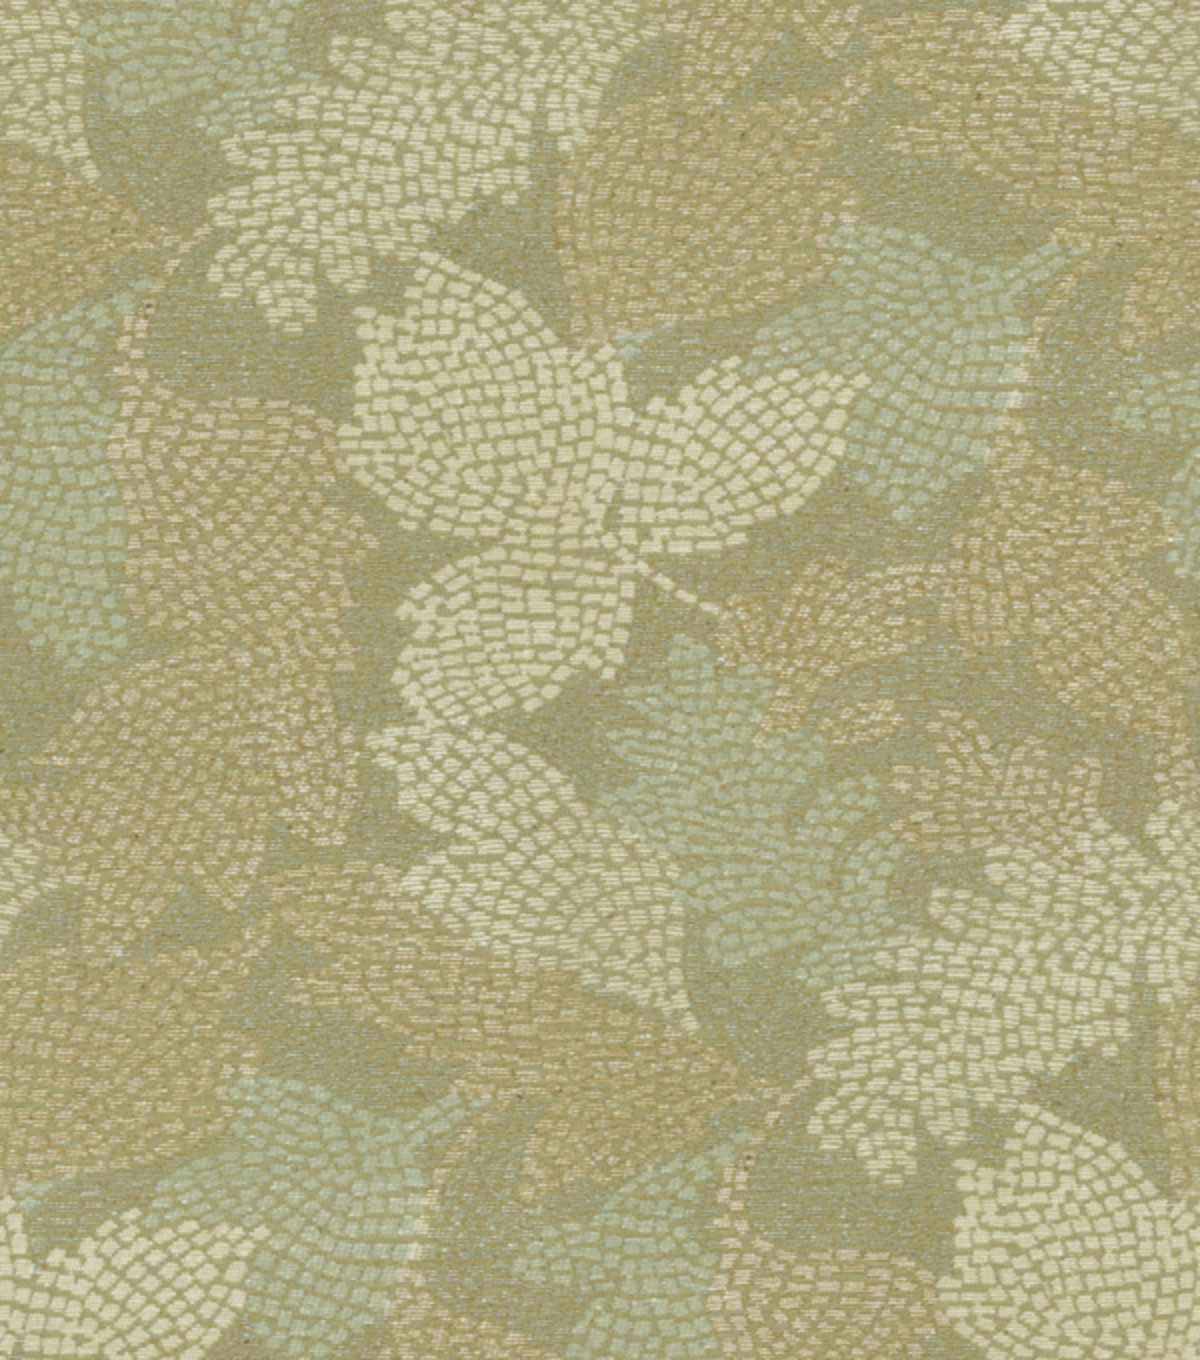 Waverly Upholstery Fabric 54\u0022-Mosaic Leaves Vapor